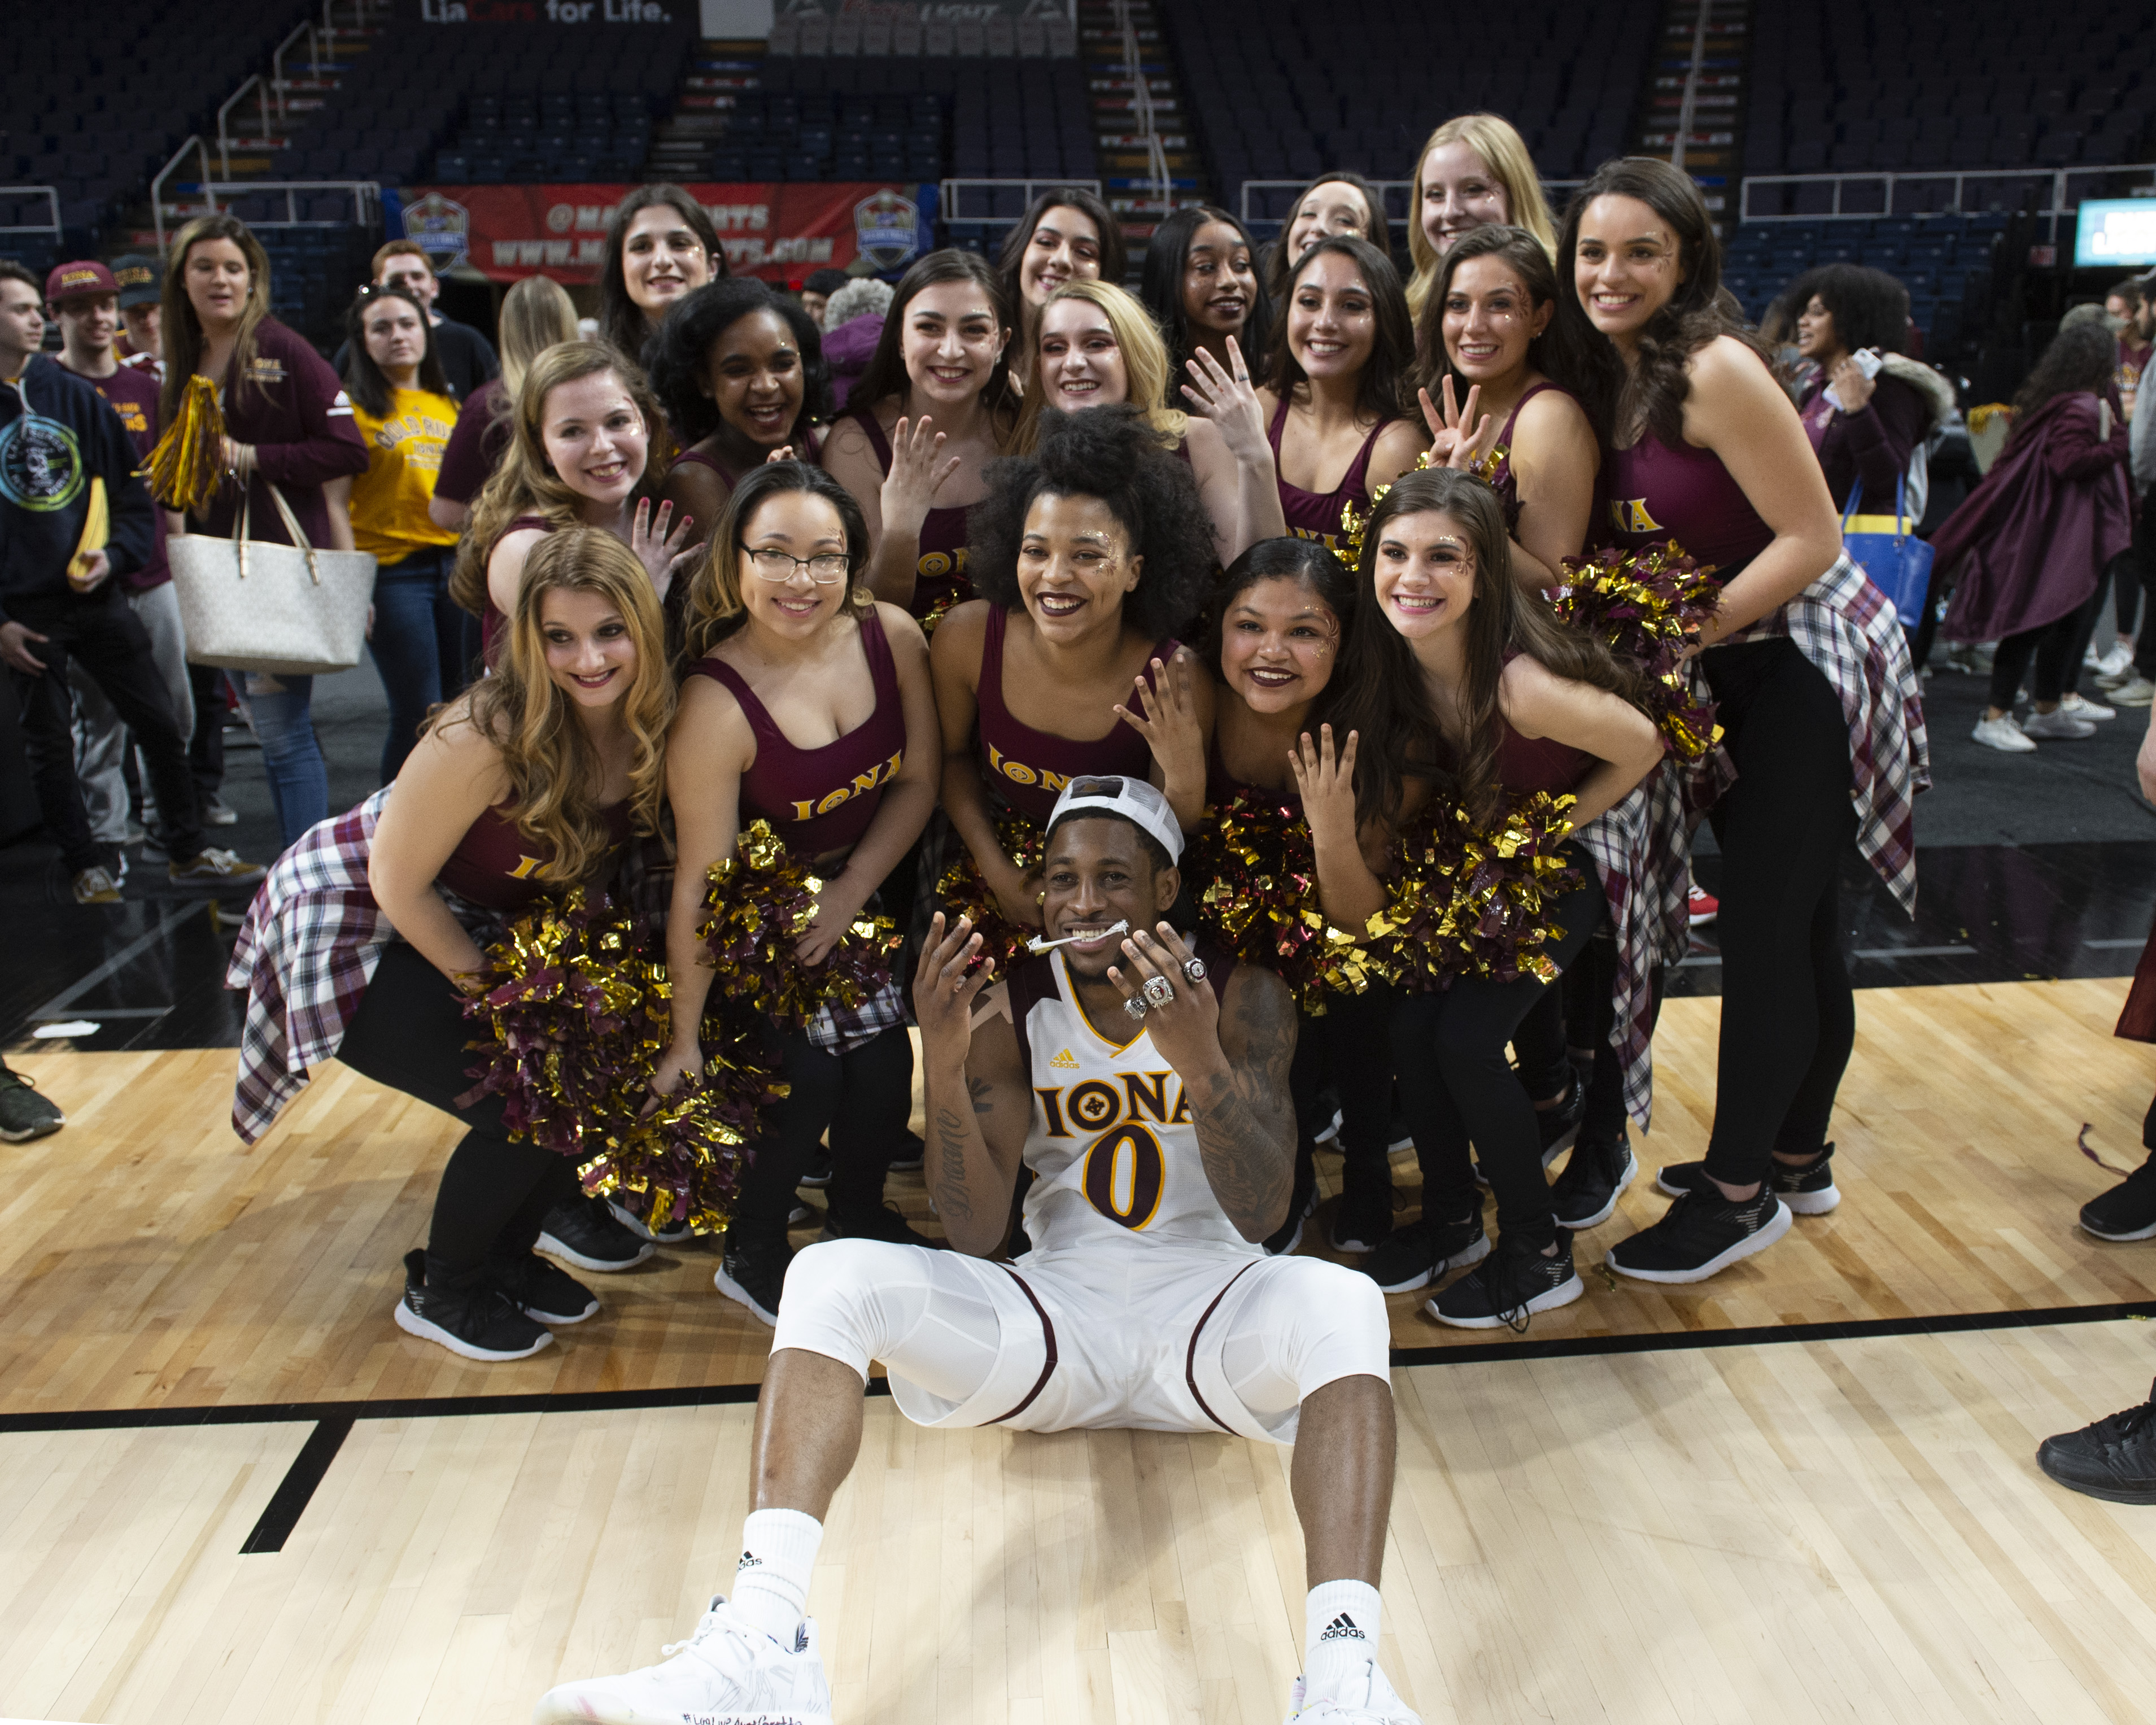 COLLEGE BASKETBALL: MAR 11 MAAC Conference Tournament - Monmouth v Iona